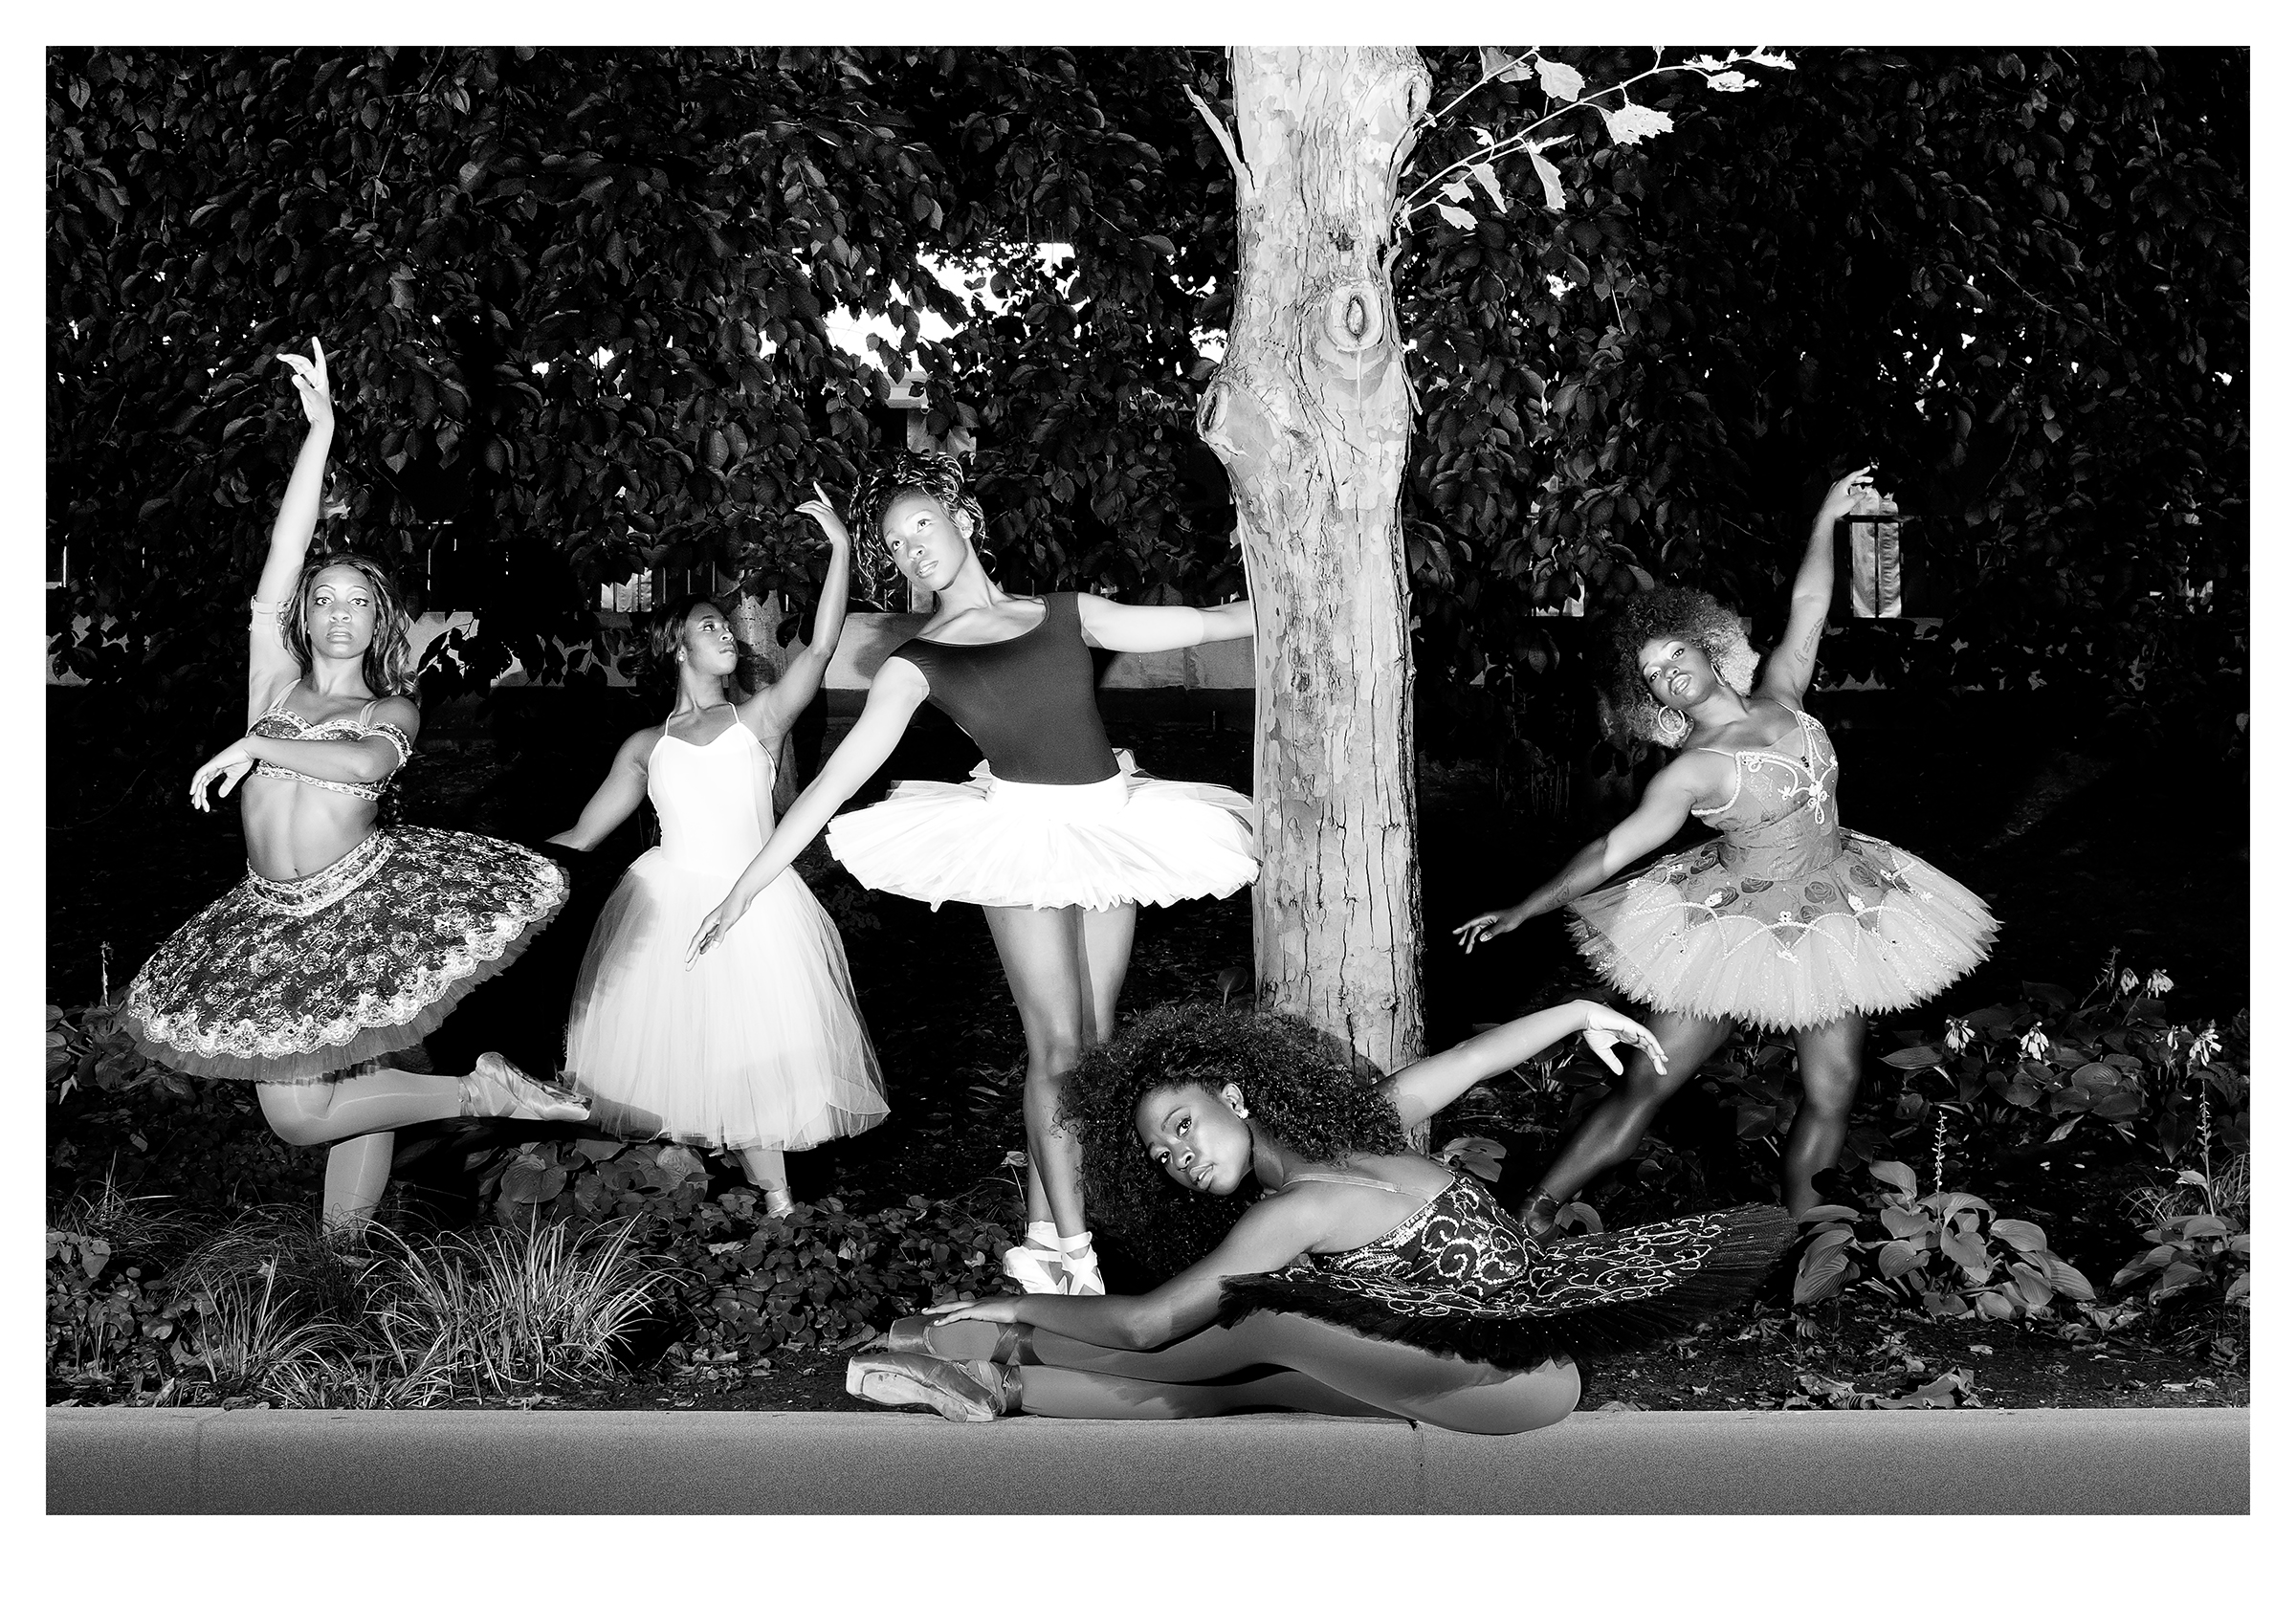 THE BALLERINA GARDEN | © PRESTON LEWIS THOMAS